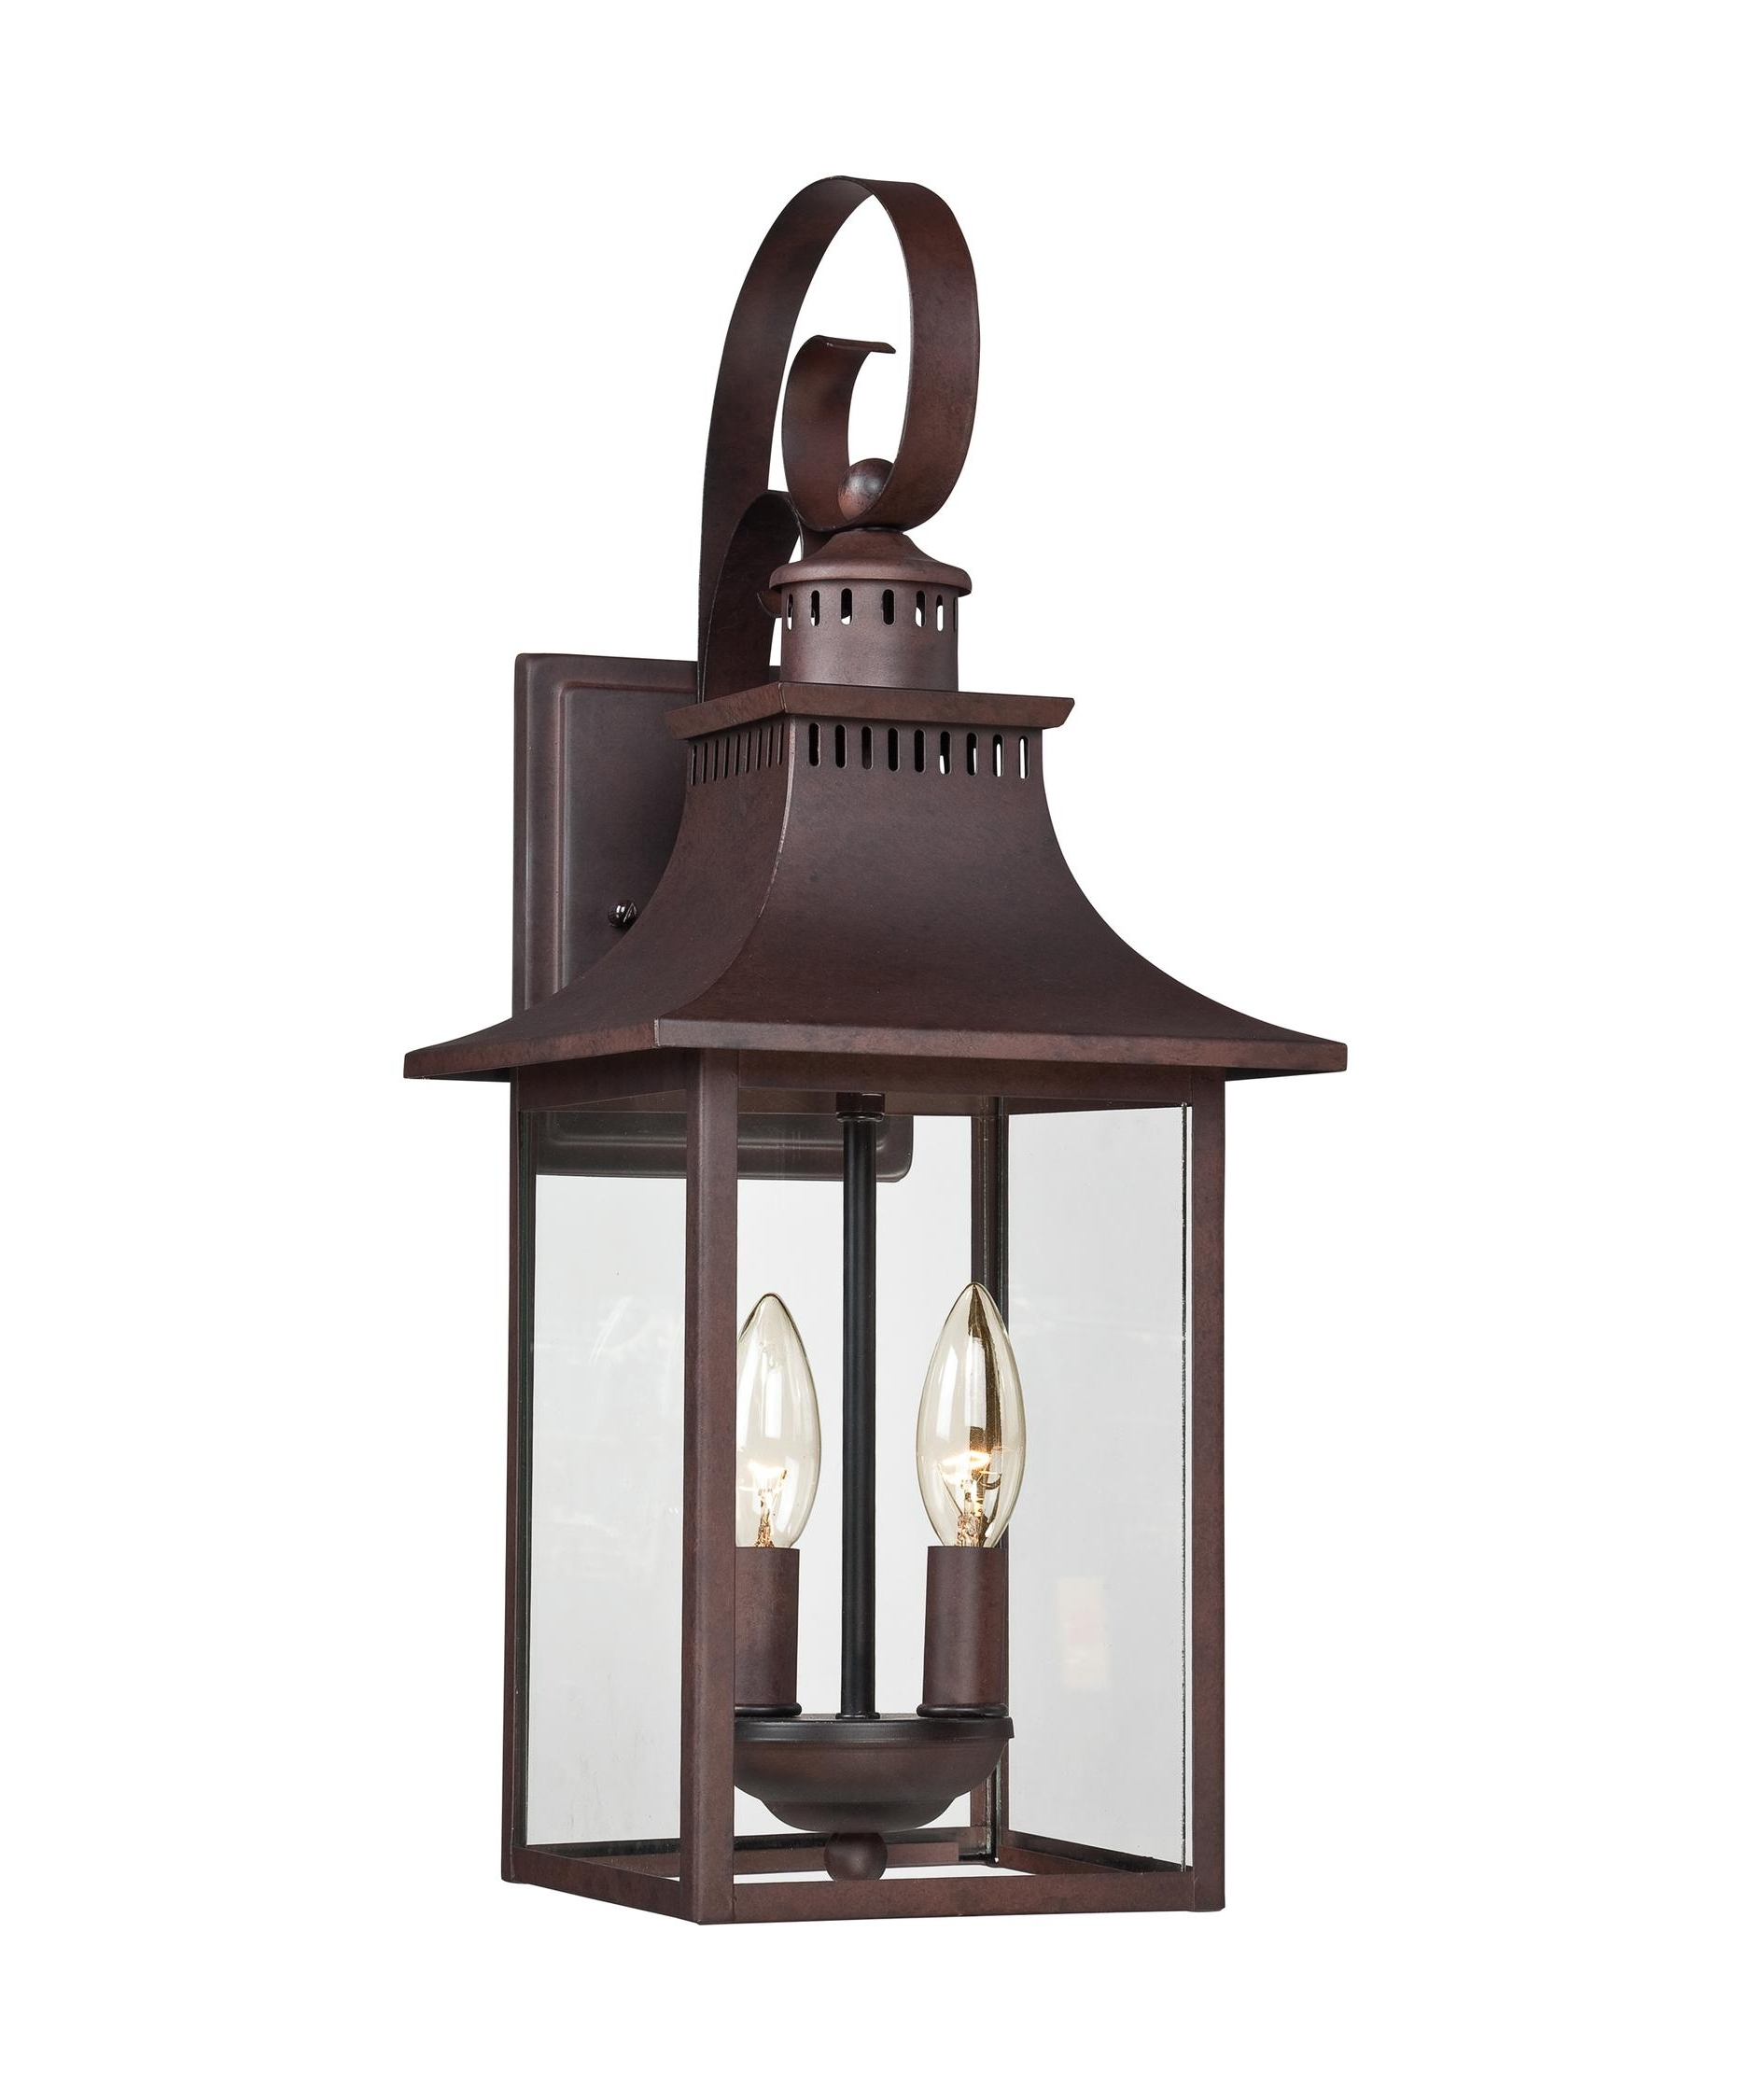 Popular Quoizel Outdoor Lanterns Within Quoizel Ccr8408 Chancellor 8 Inch Wide 2 Light Outdoor Wall Light (Gallery 2 of 20)